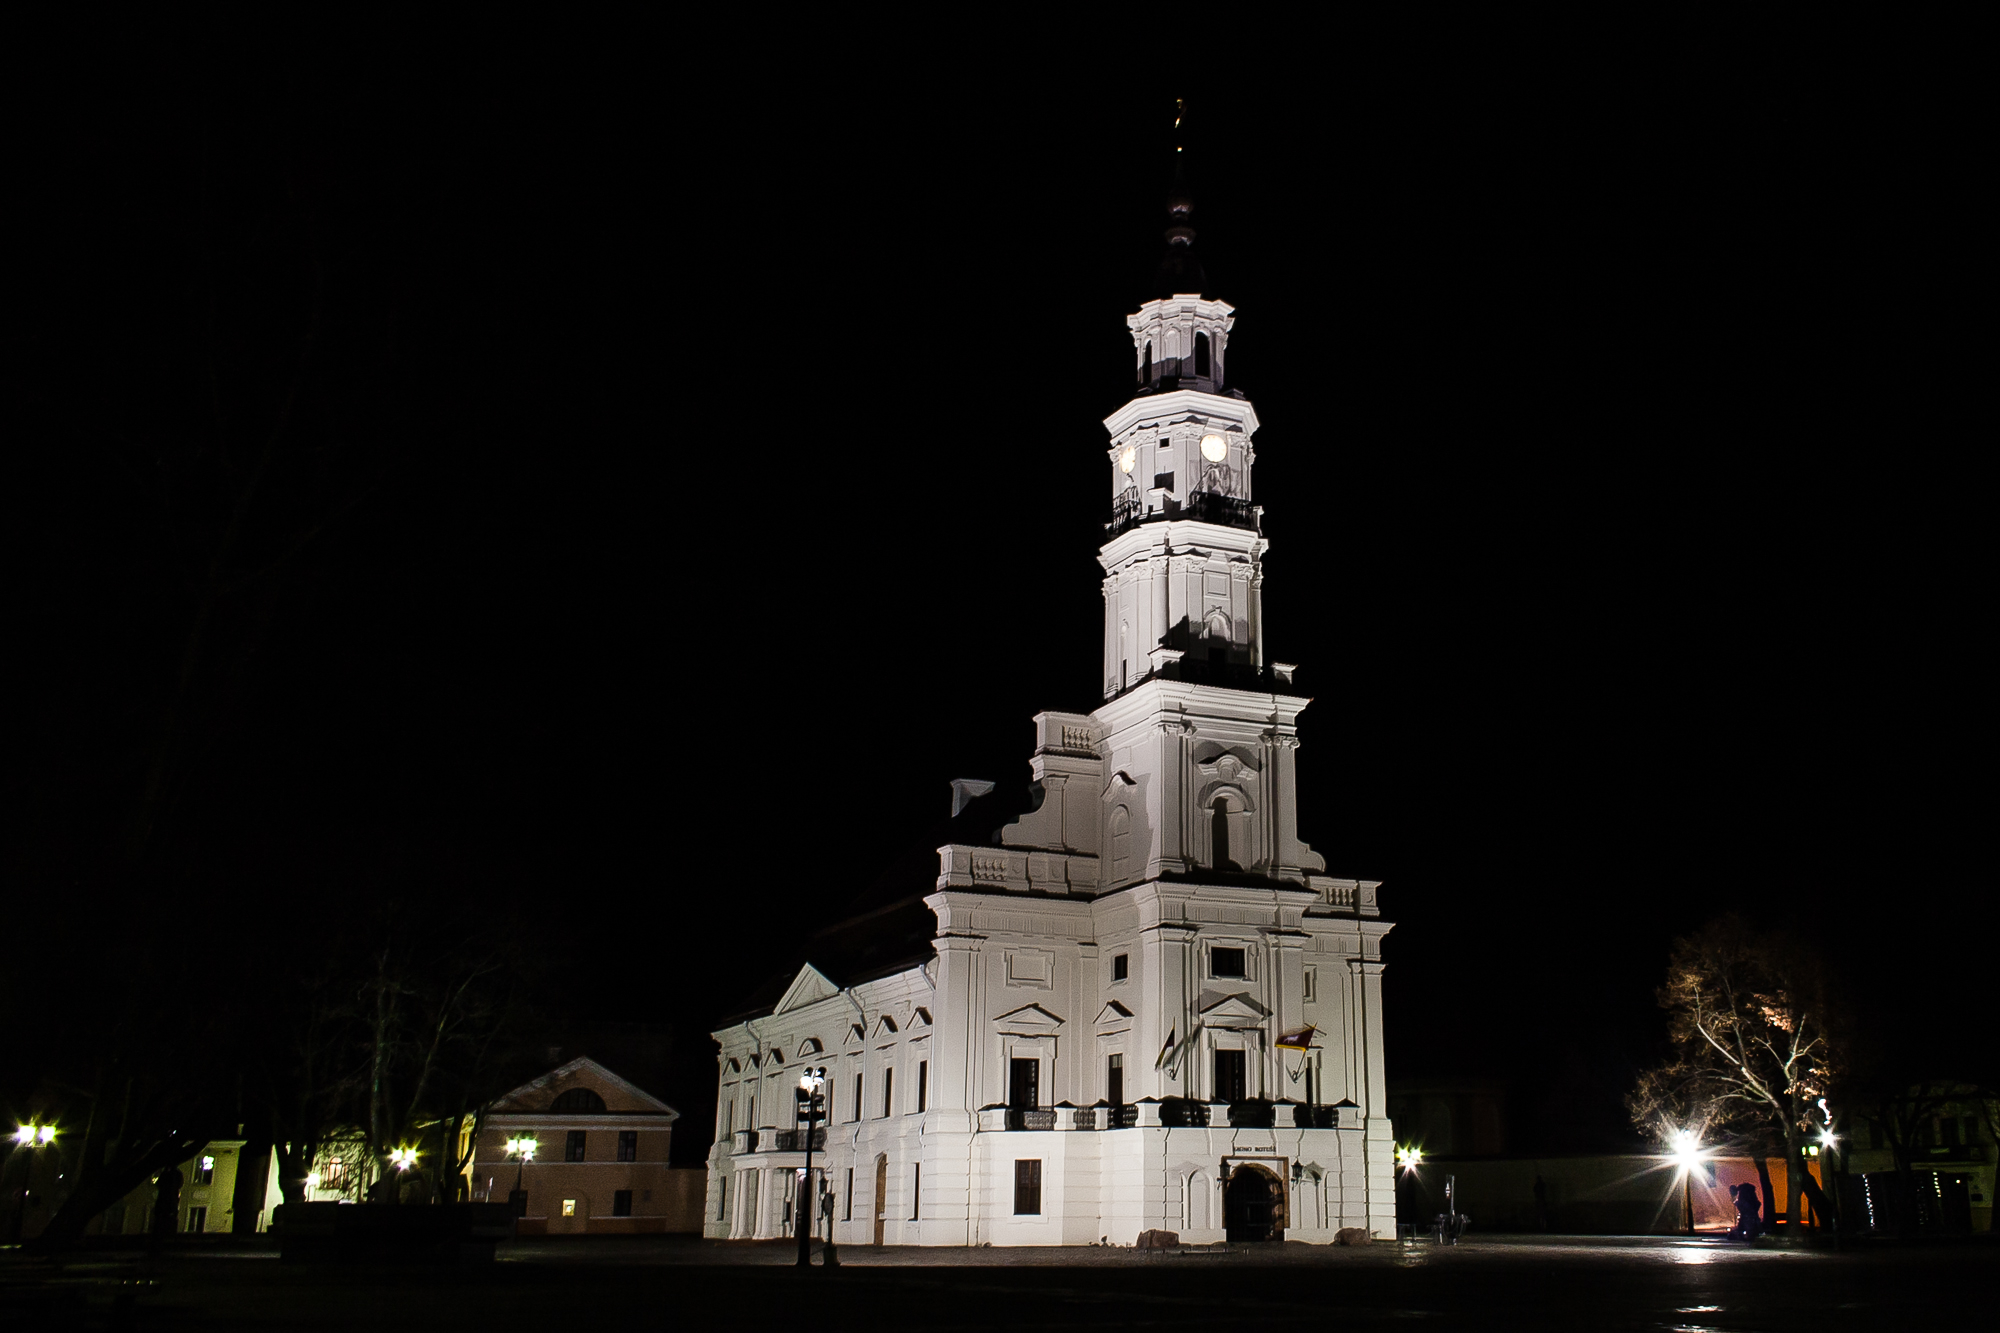 Kaunas Town-Hall At Night Via @Atisgailis